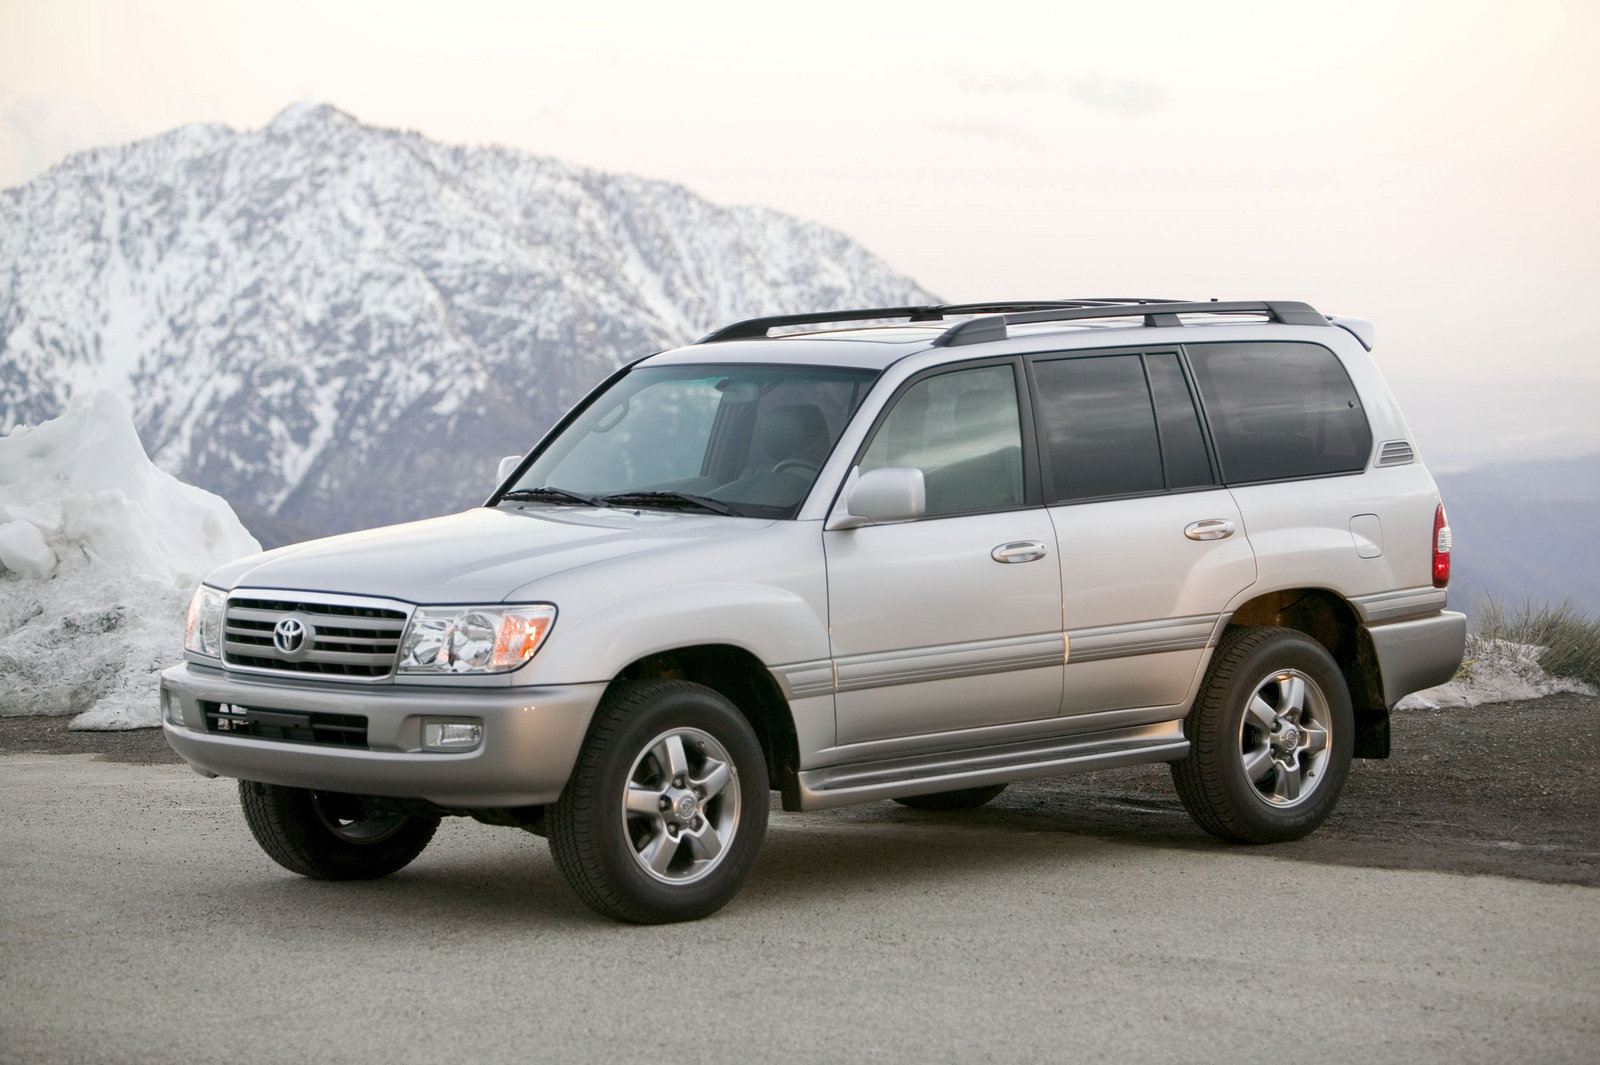 2006 toyota land cruiser picture 94390 car review. Black Bedroom Furniture Sets. Home Design Ideas